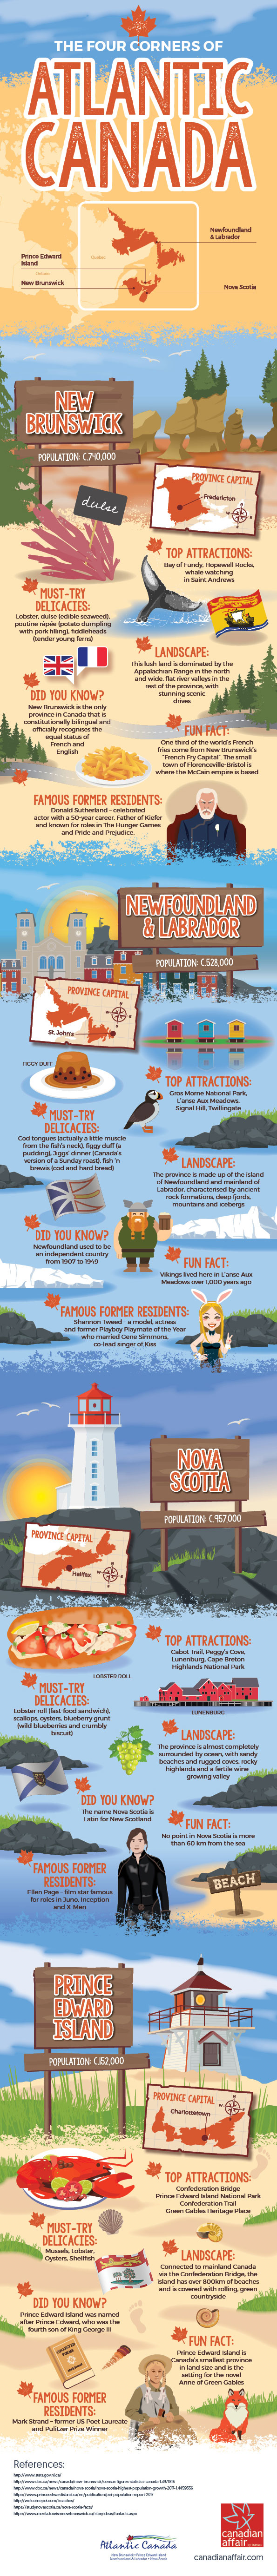 The Four Corners of Atlantic Canada